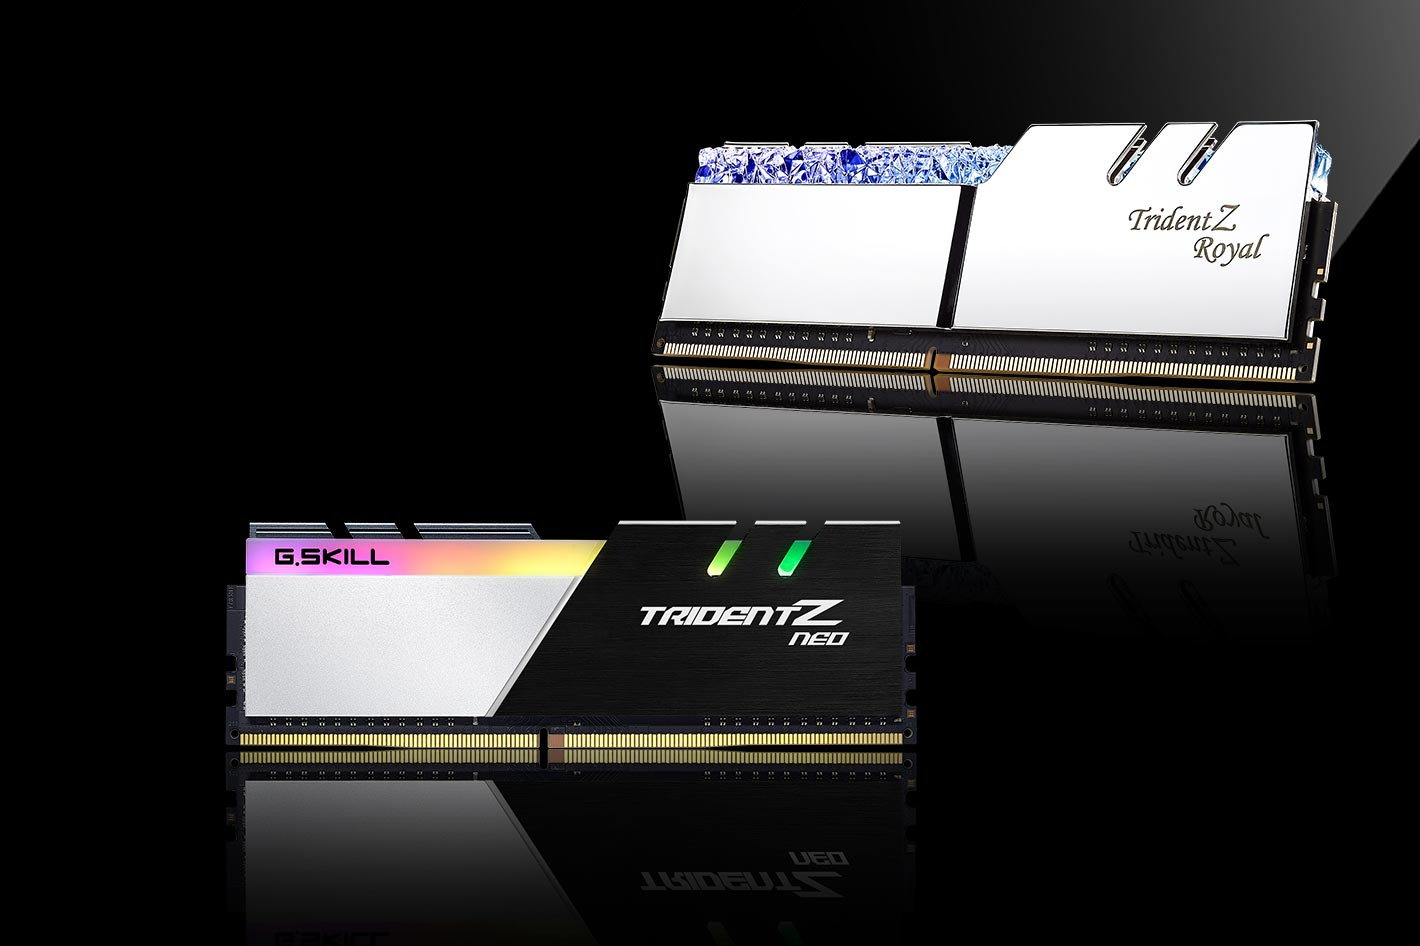 New G.SKILL DDR4-4400 CL17 memory kits for content creation computers